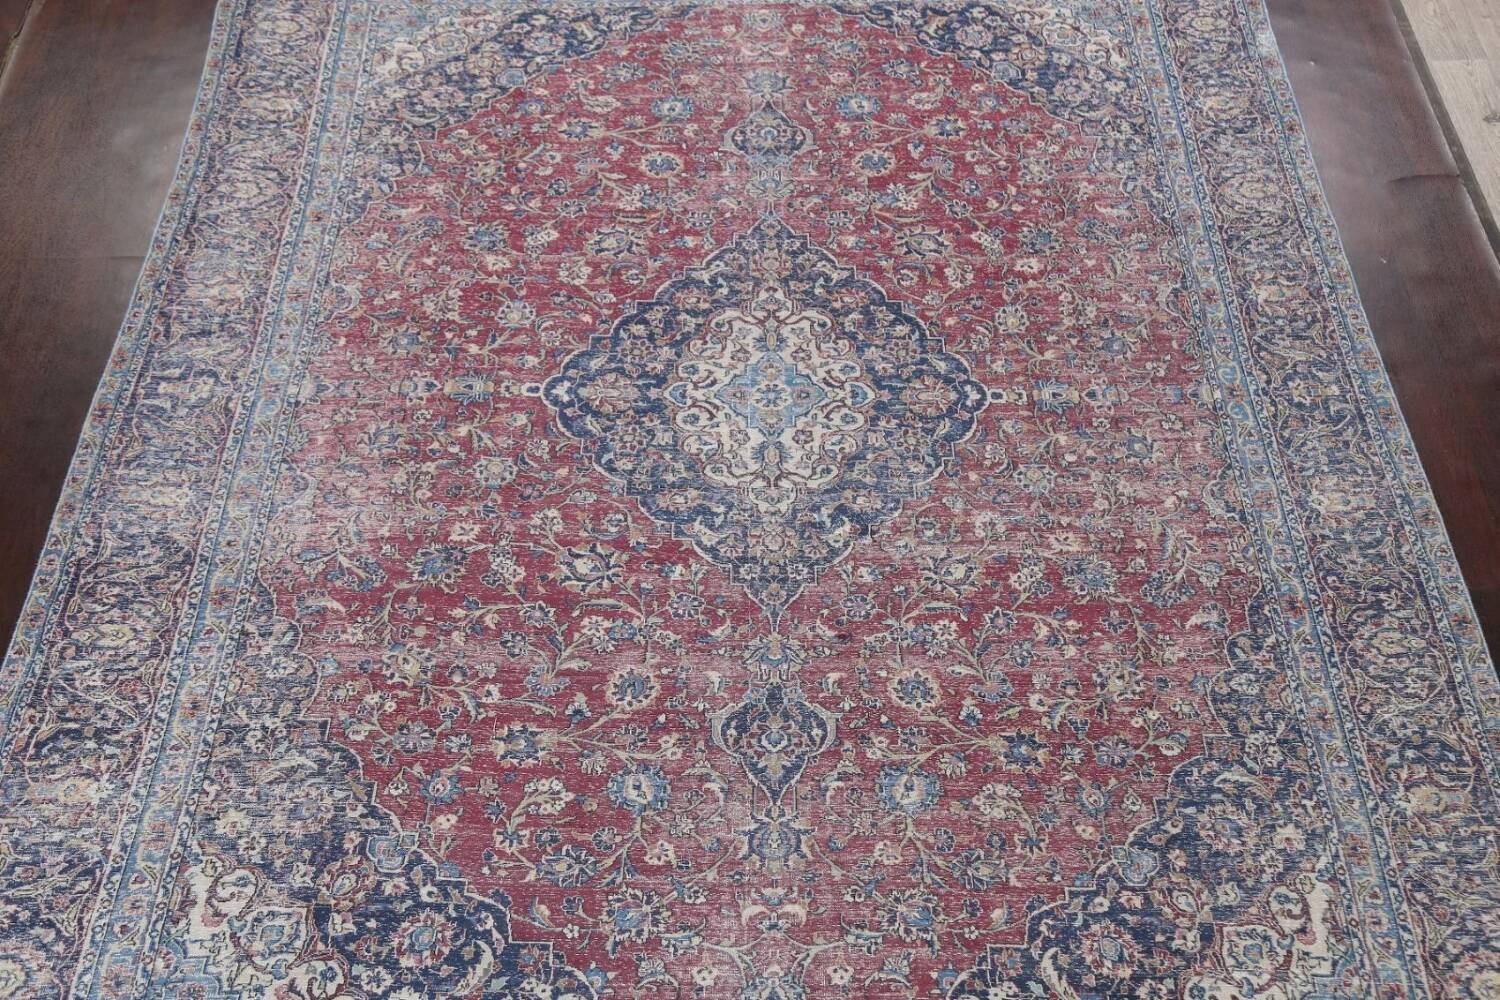 Antique Traditional Kashan Persian Rug 9x12 image 3